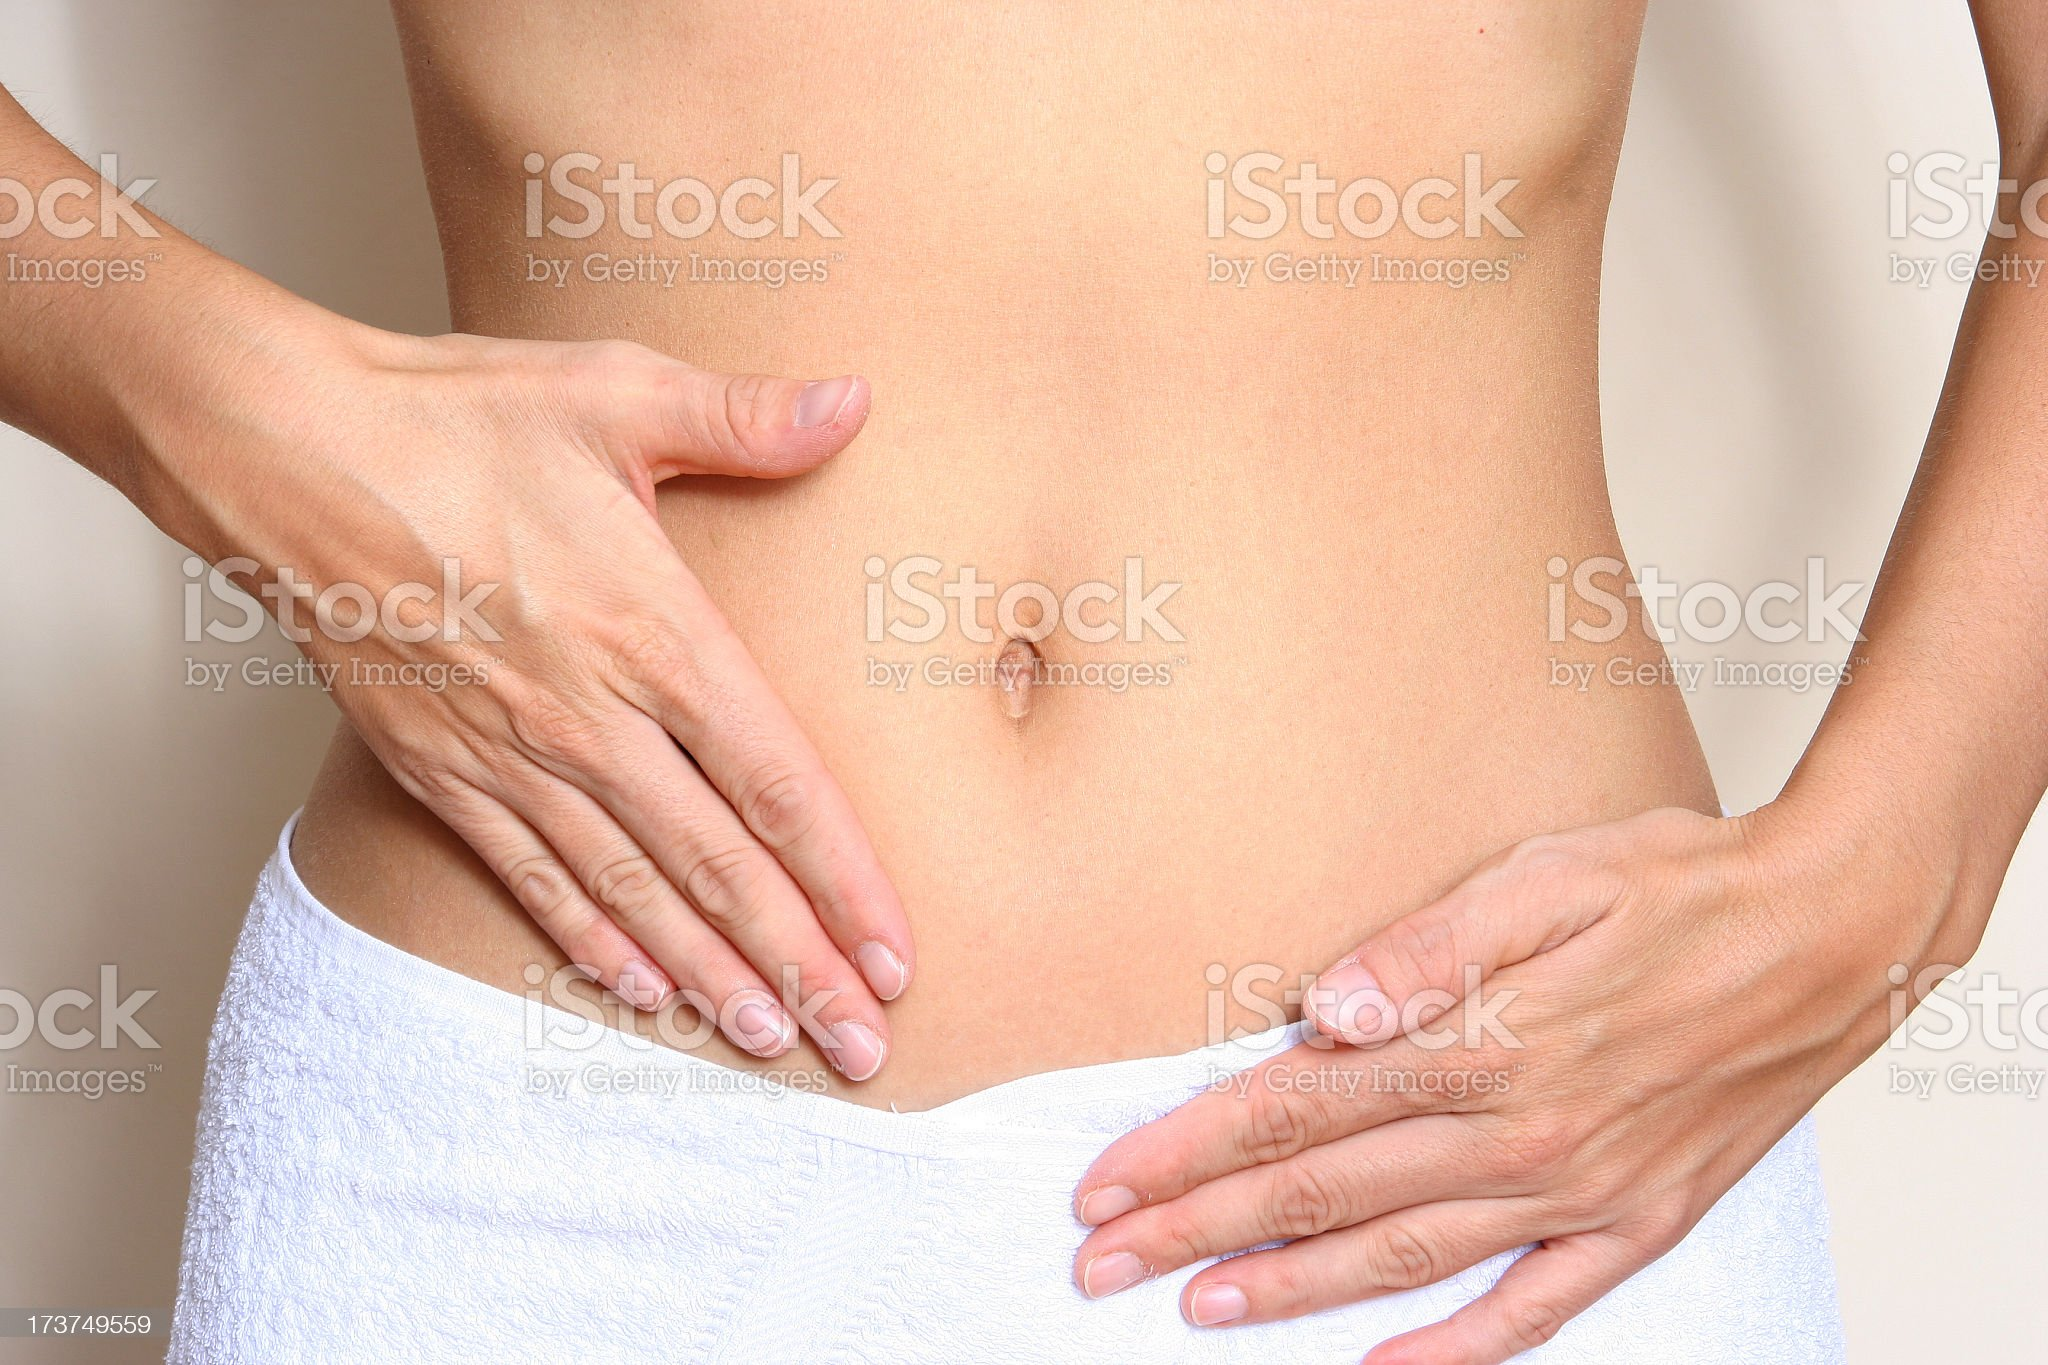 A woman touching her stomach wearing a white towel royalty-free stock photo